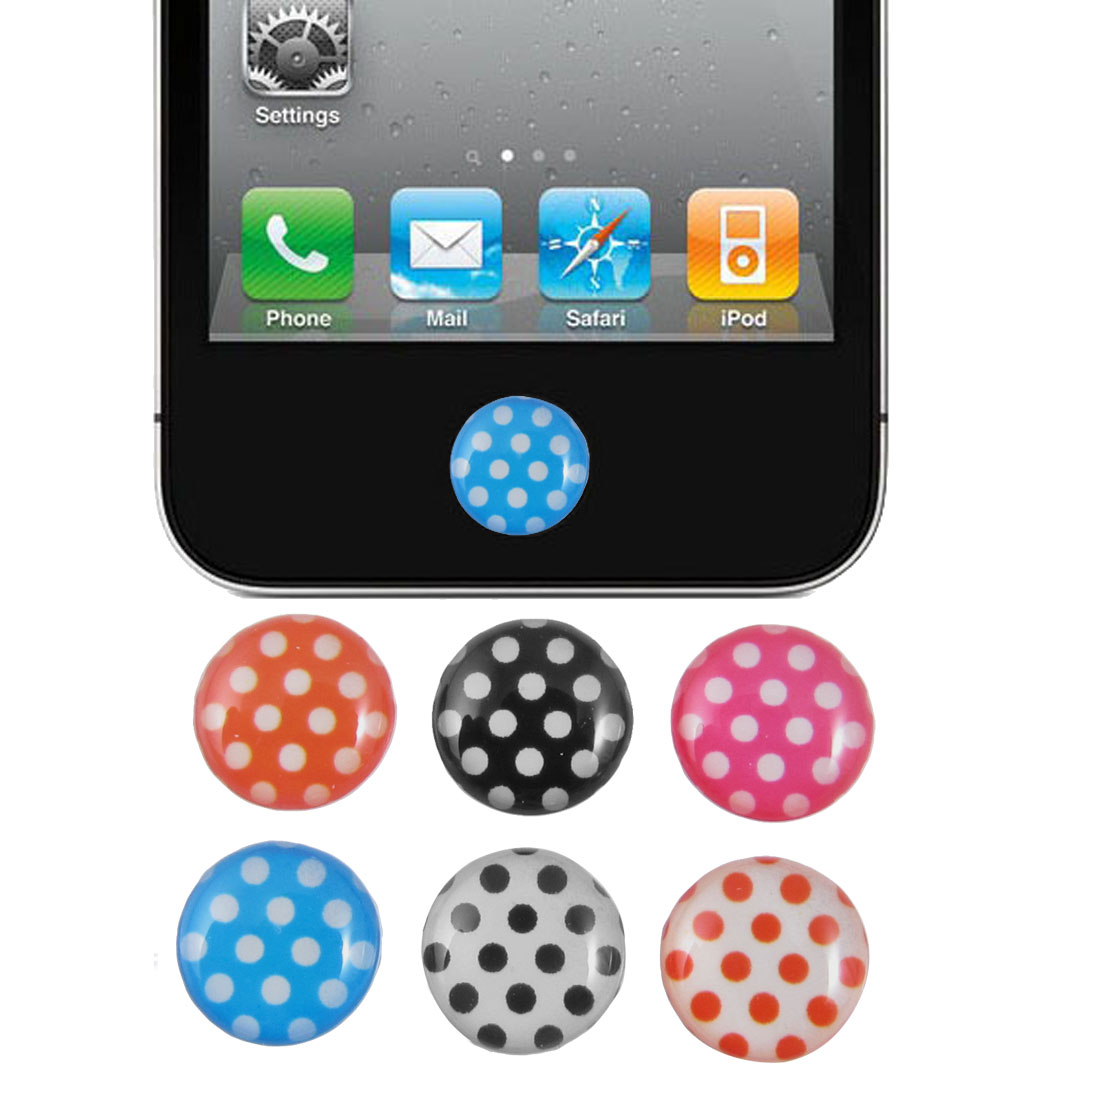 Multicolor Dots Home Button Stickers 6 in 1 for Cell Phone